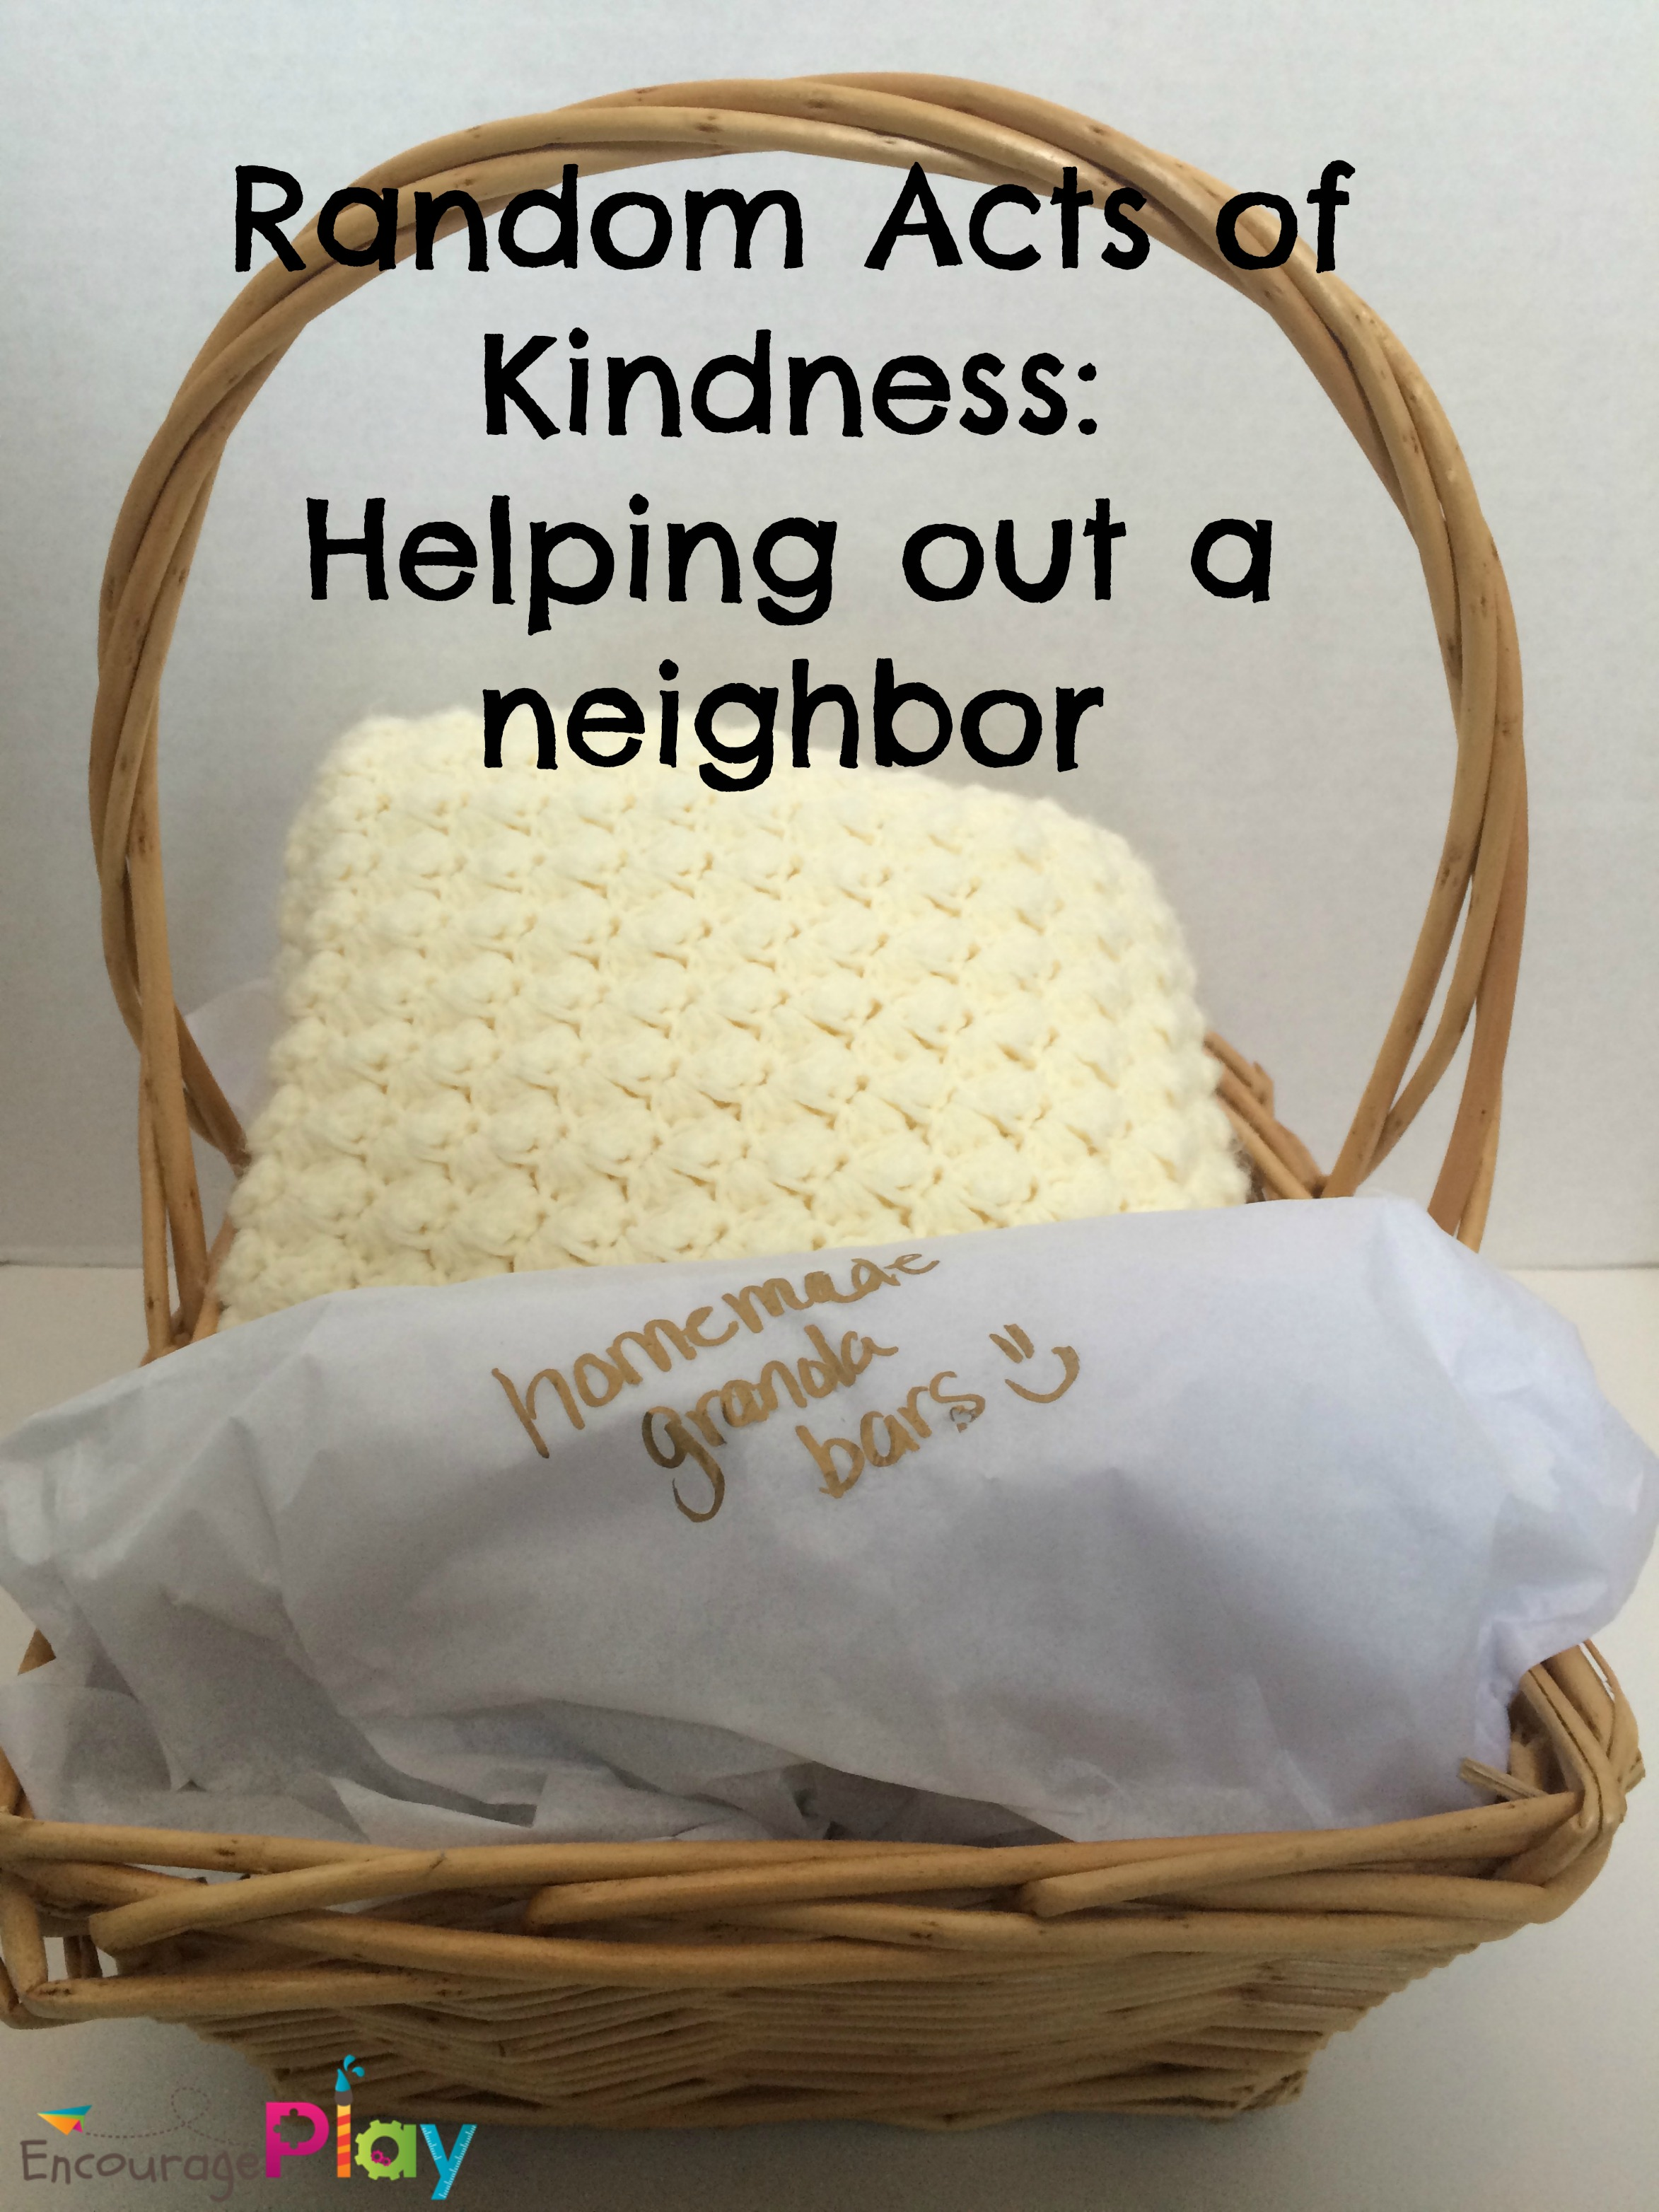 Random Acts of Kindness Helping a Neighbor by Encourage Play